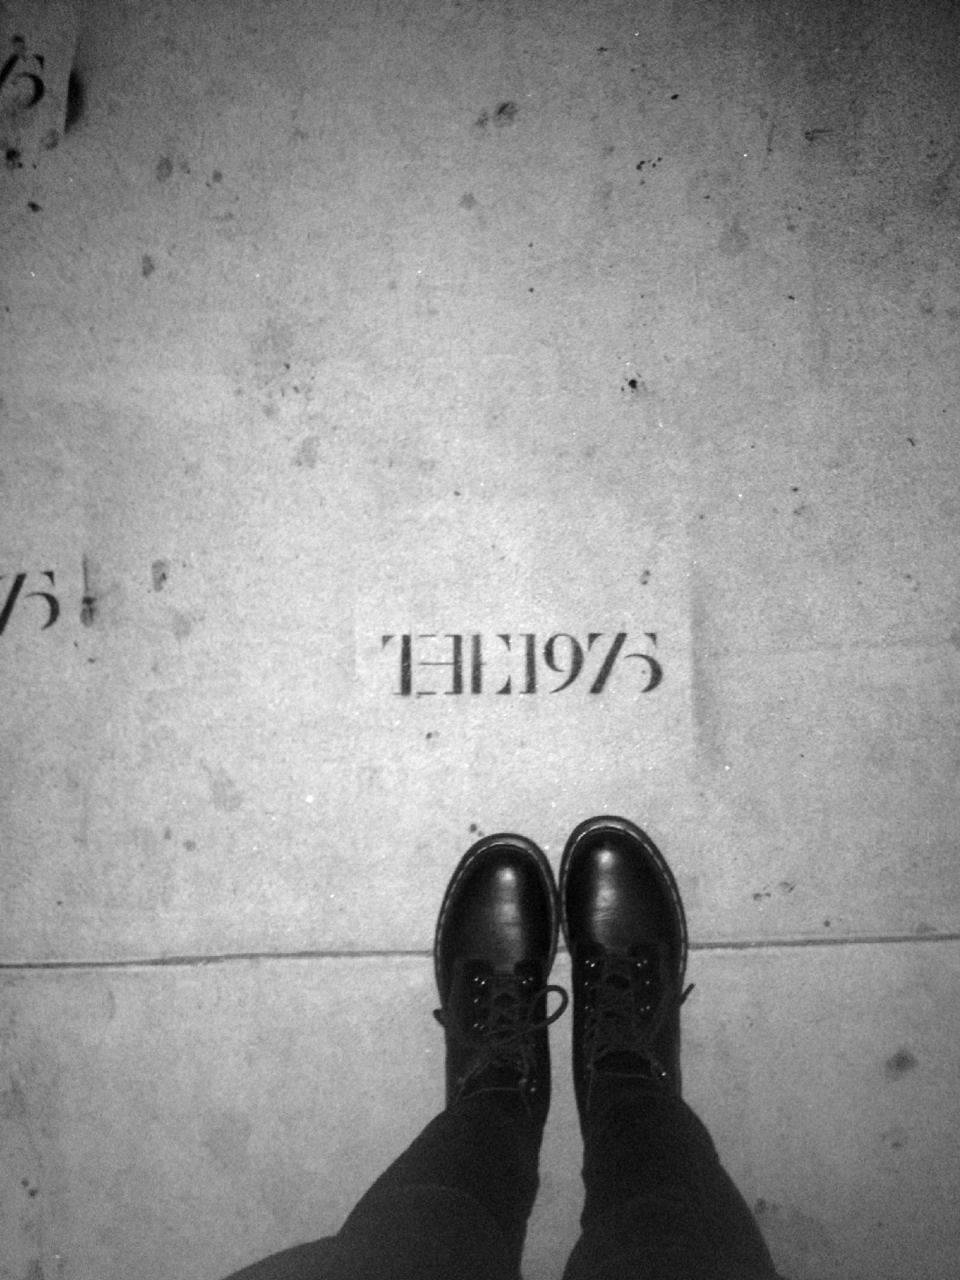 band names and songwriters' names were scattered on pavements ...